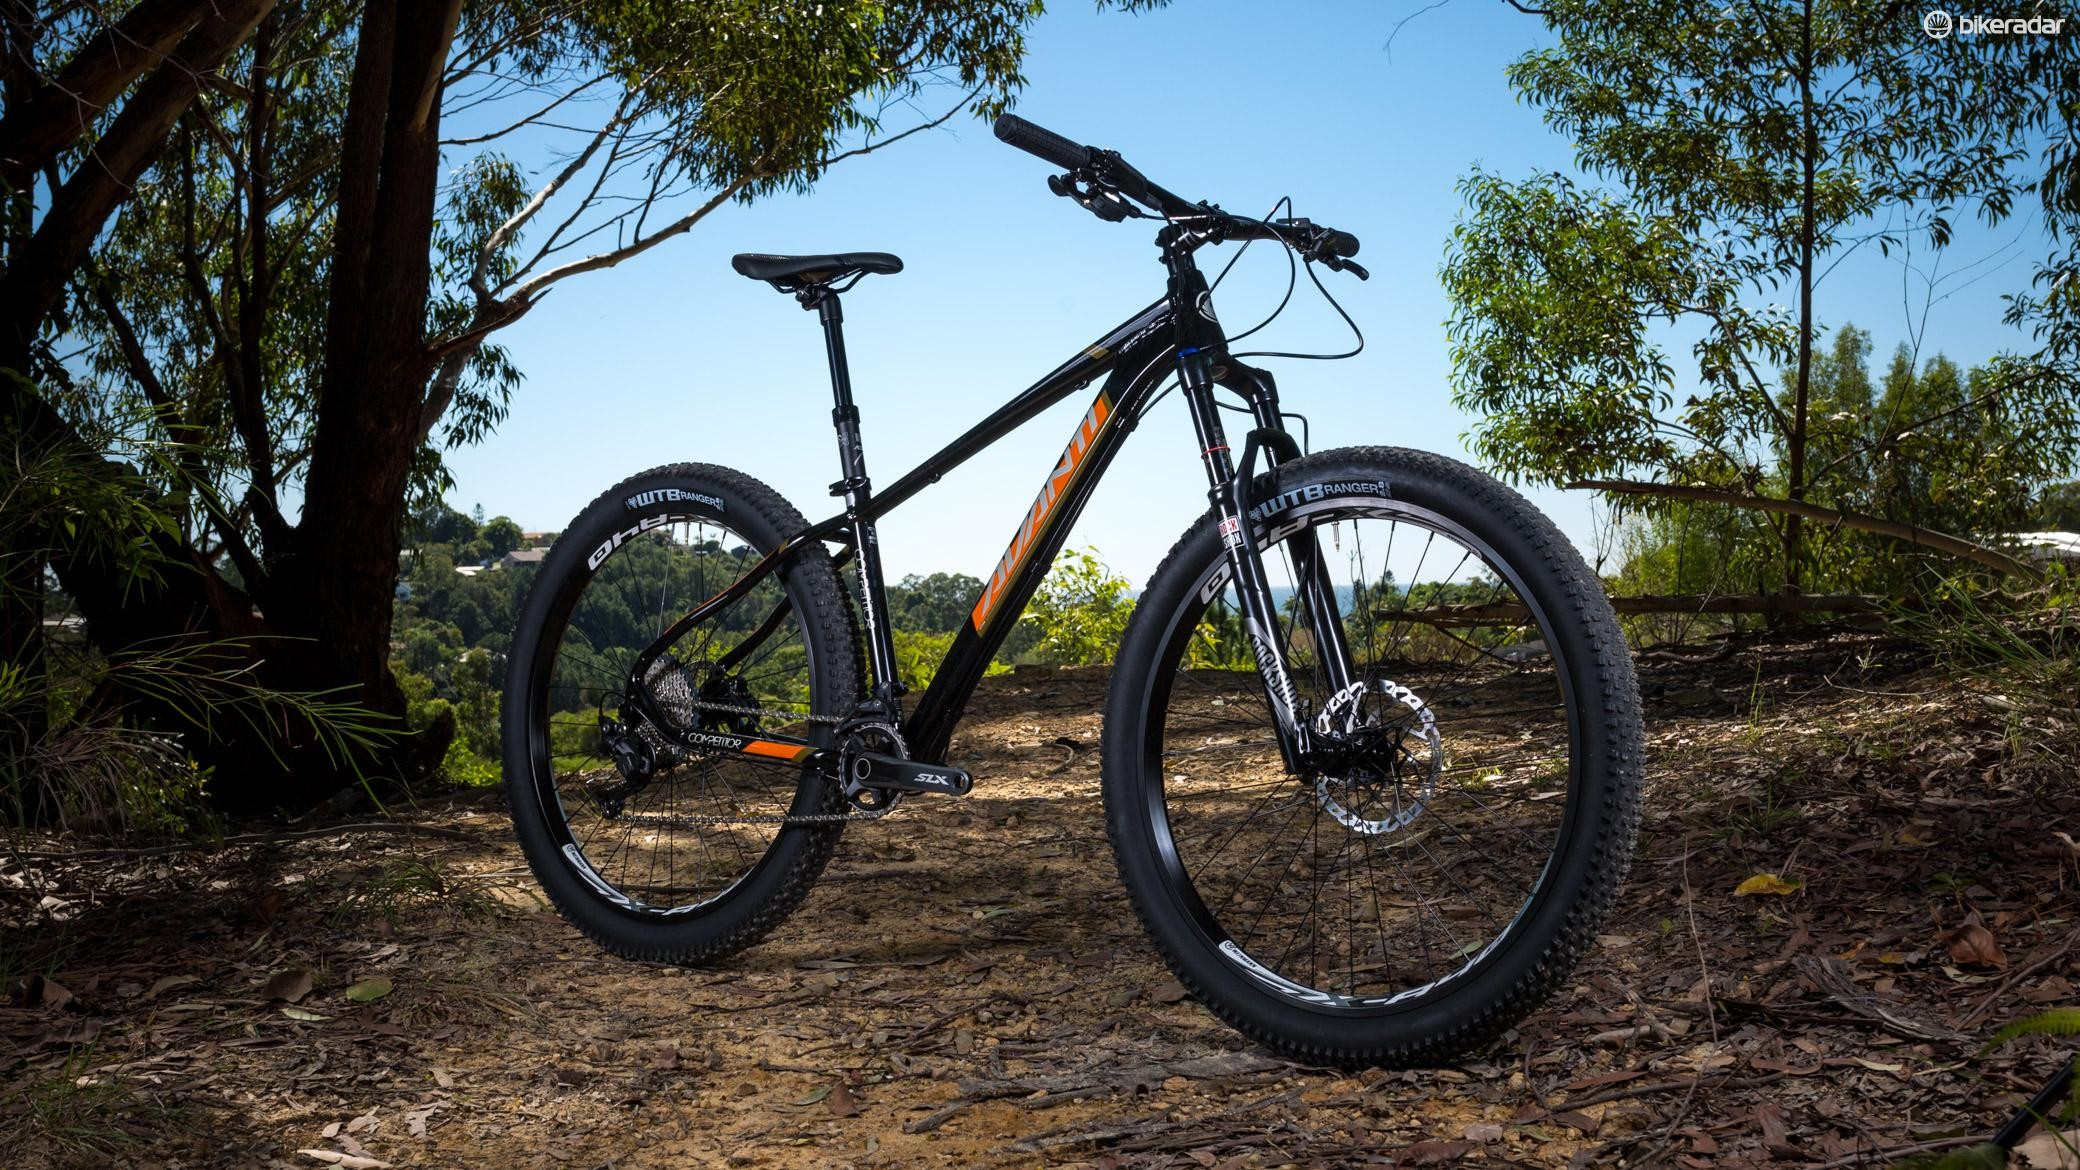 Avanti's Competitor 2 is a 27.5+ alloy hardtail